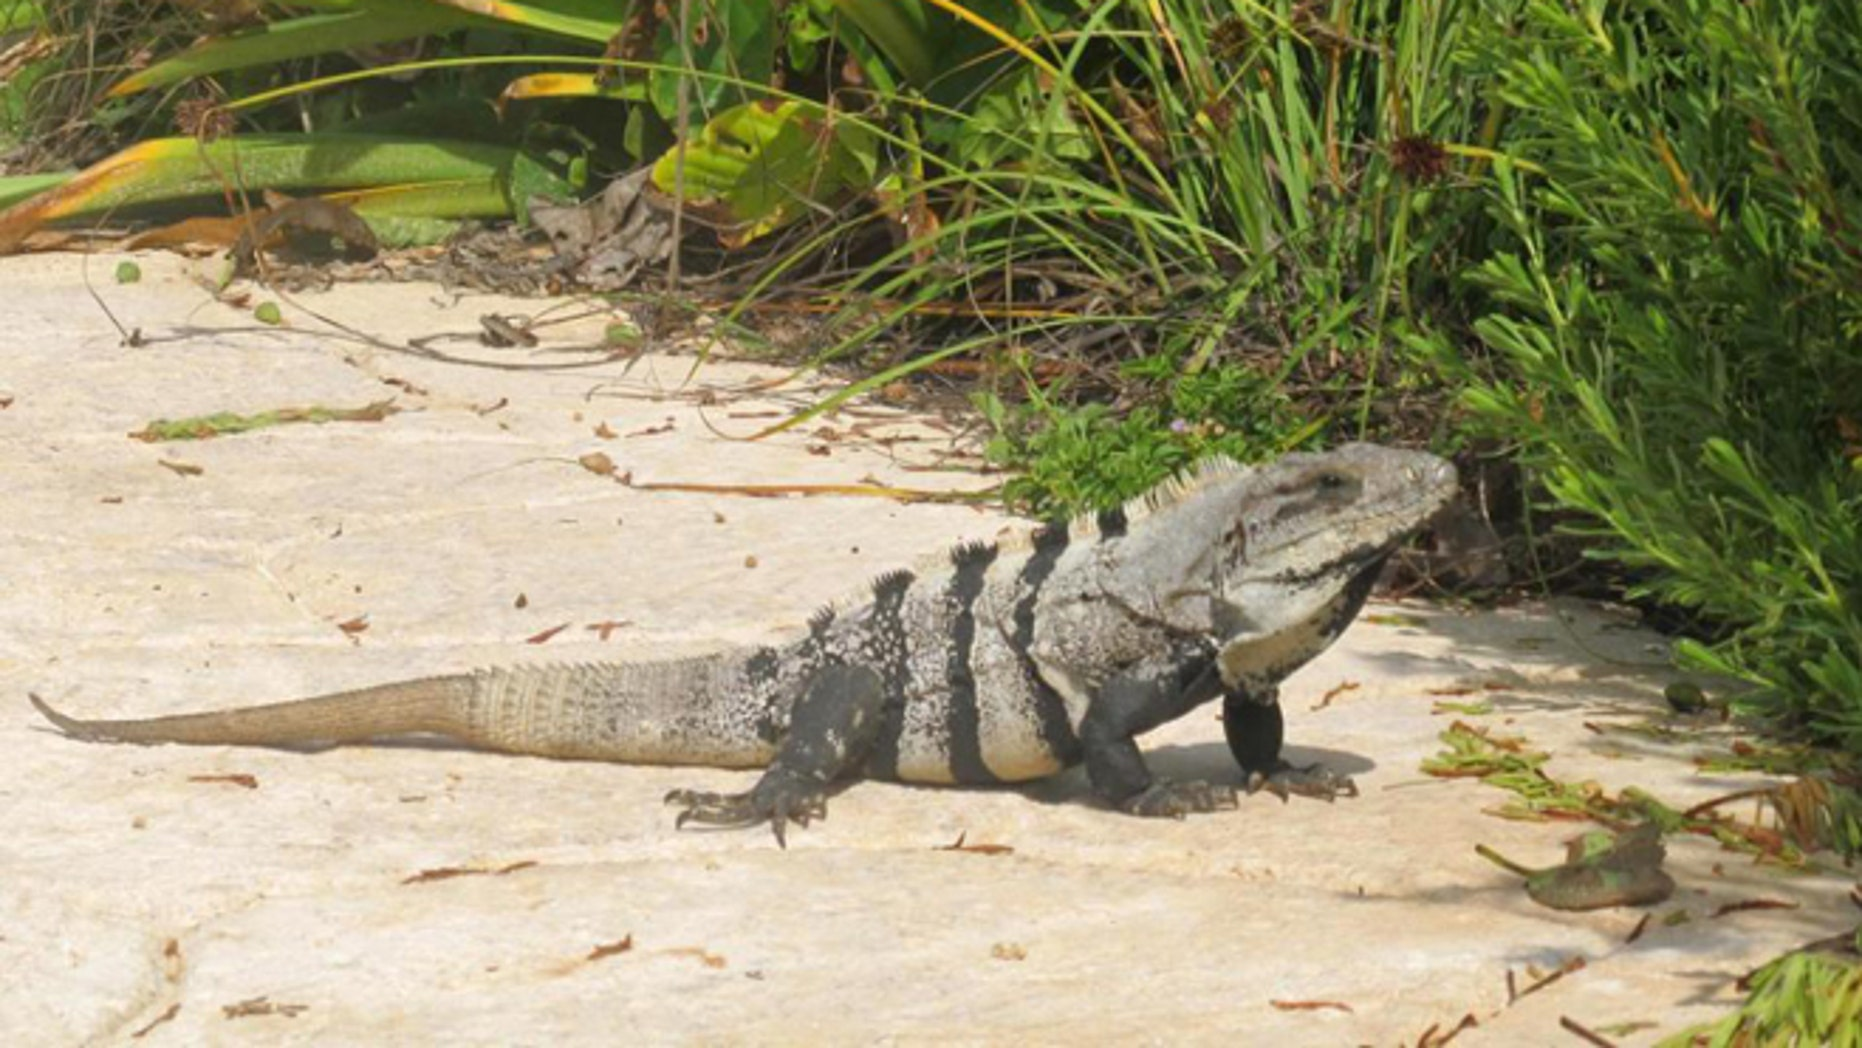 FILE - This Nov. 2012 file photo shows an iguana basking in the sun on the Isla Mujeres, Mexico. Mexican environmental authorities announced on Tuesday, May 12, 2015 they seized gallons of stew made of Mexican spiny-tailed iguanas at a restaurant in the township of Jojutla, in southern Morelos state, a species considered protected and threatened in Mexico. (AP Photo/Amanda Lee Myers, File)